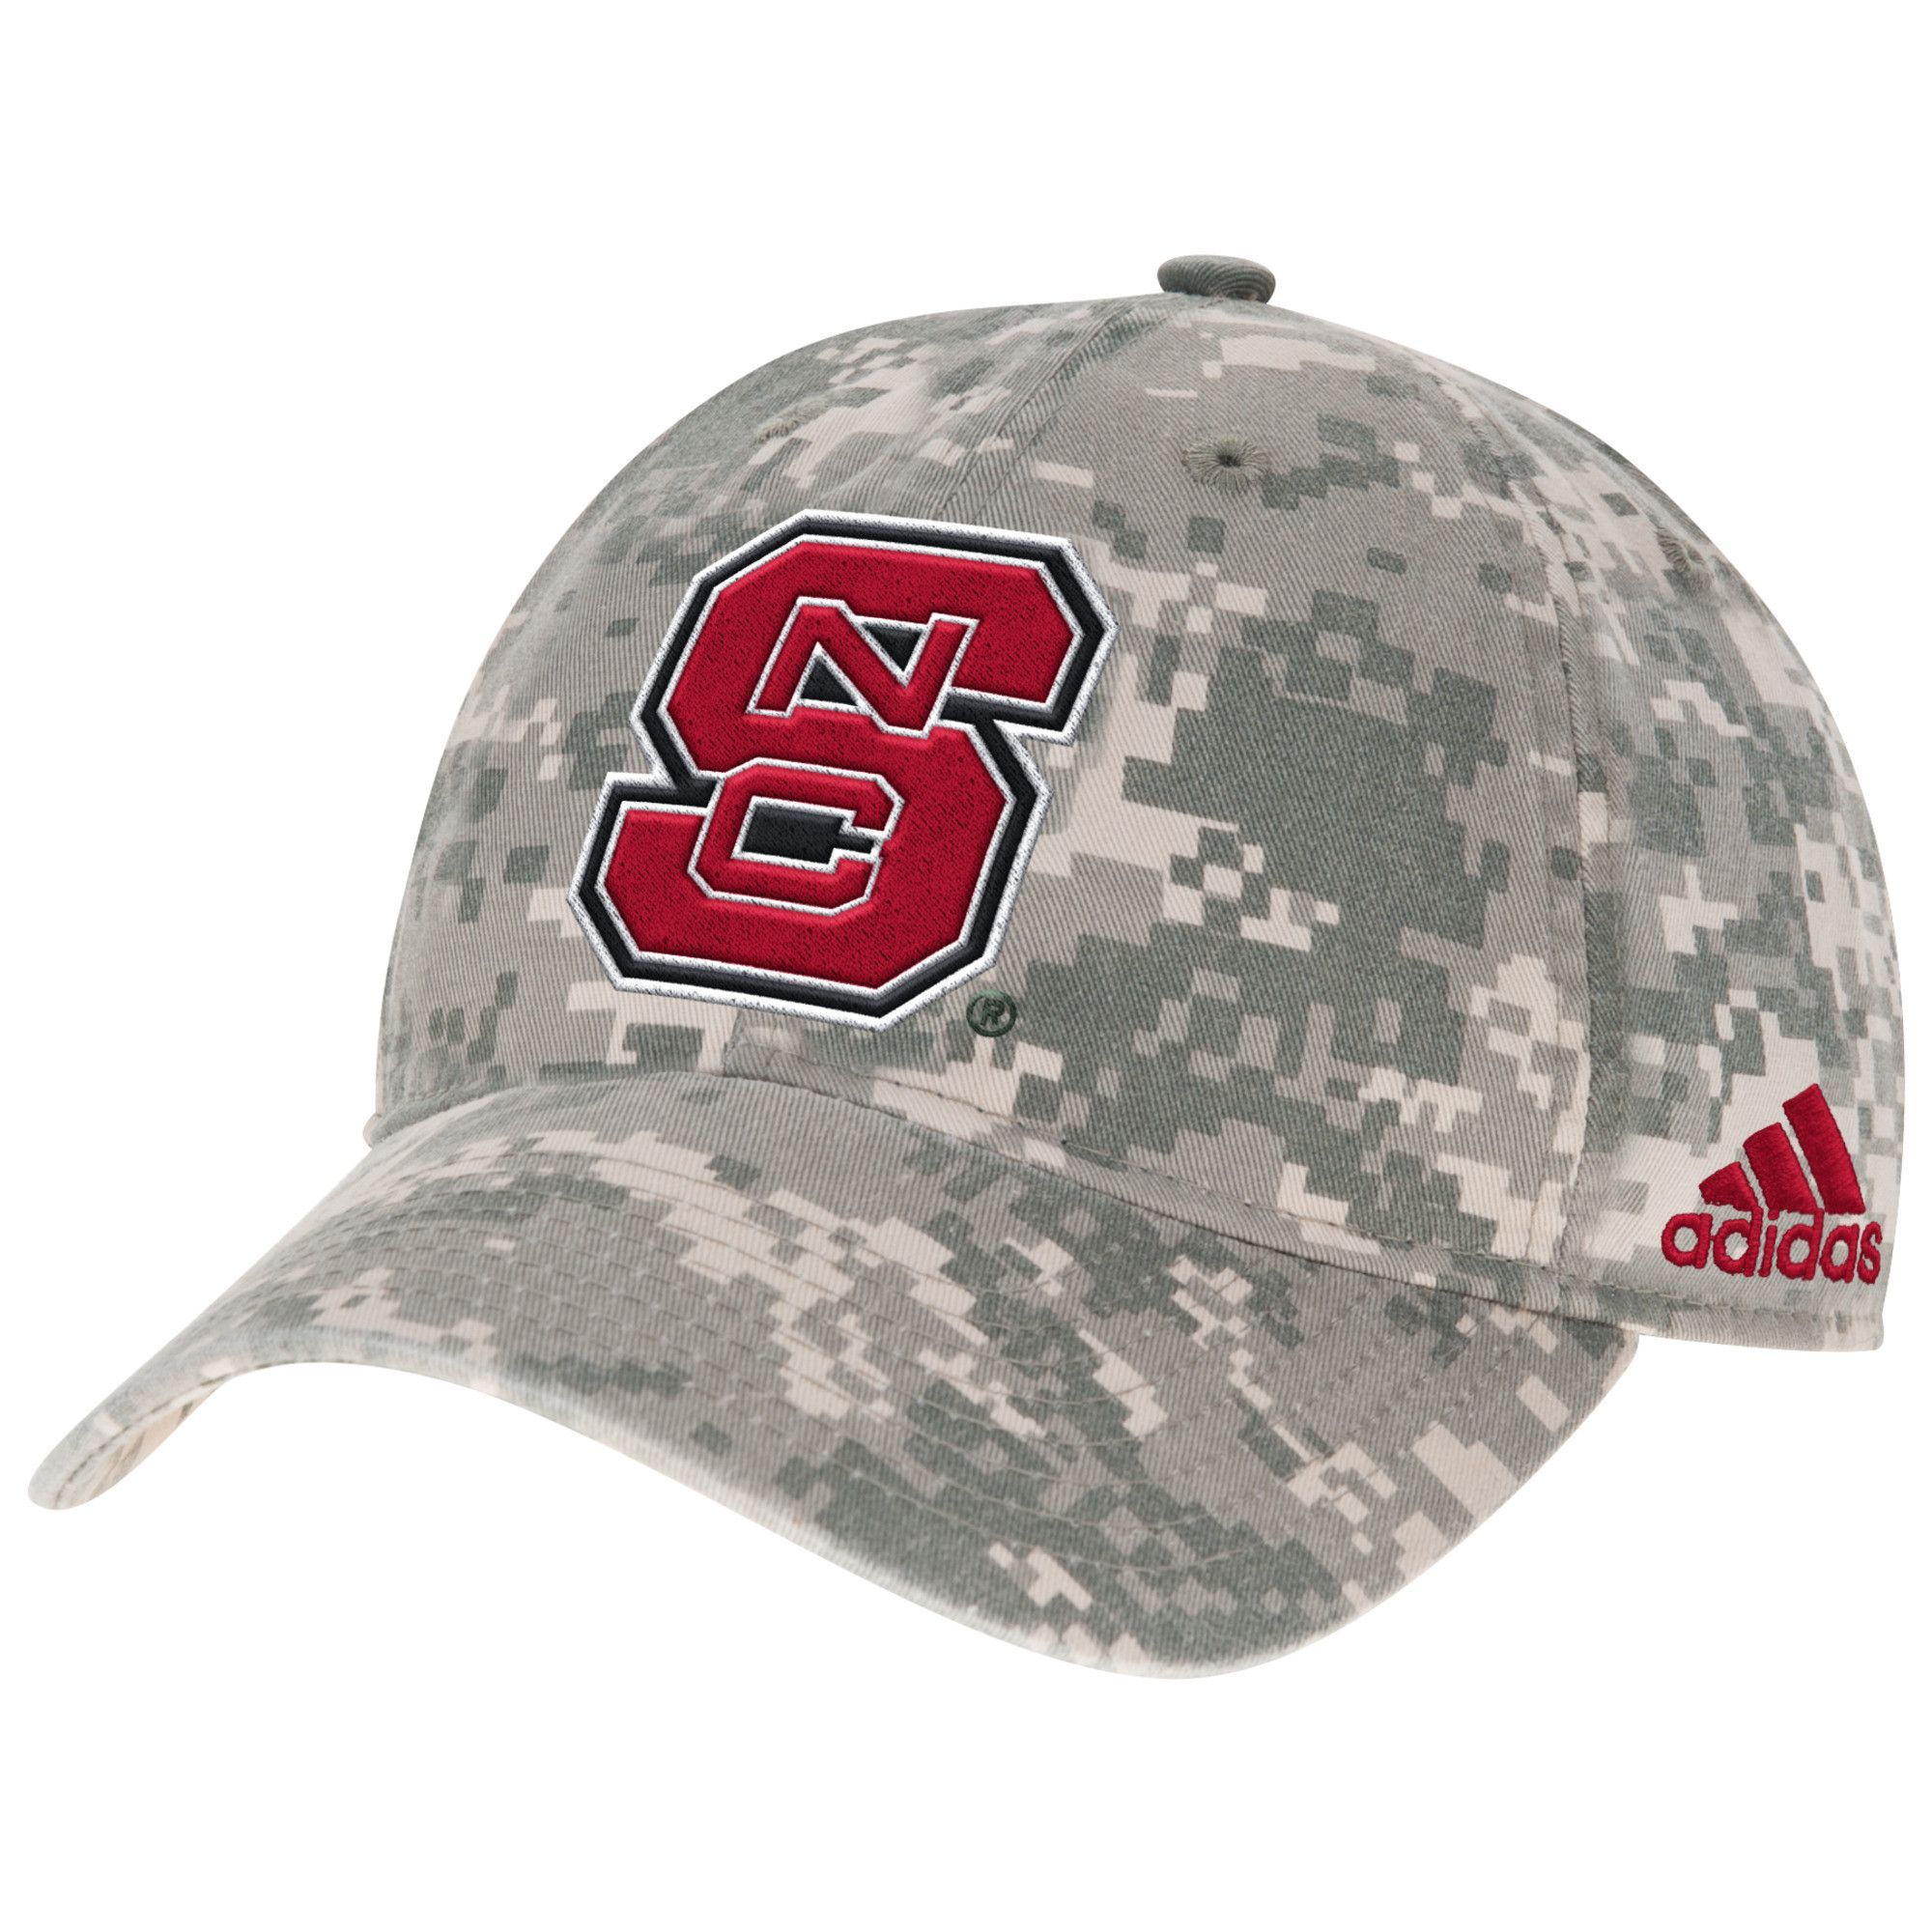 best service 51e9b 777d6 NC State Wolfpack Adidas Digital Camo Adjustable Slouch Hat